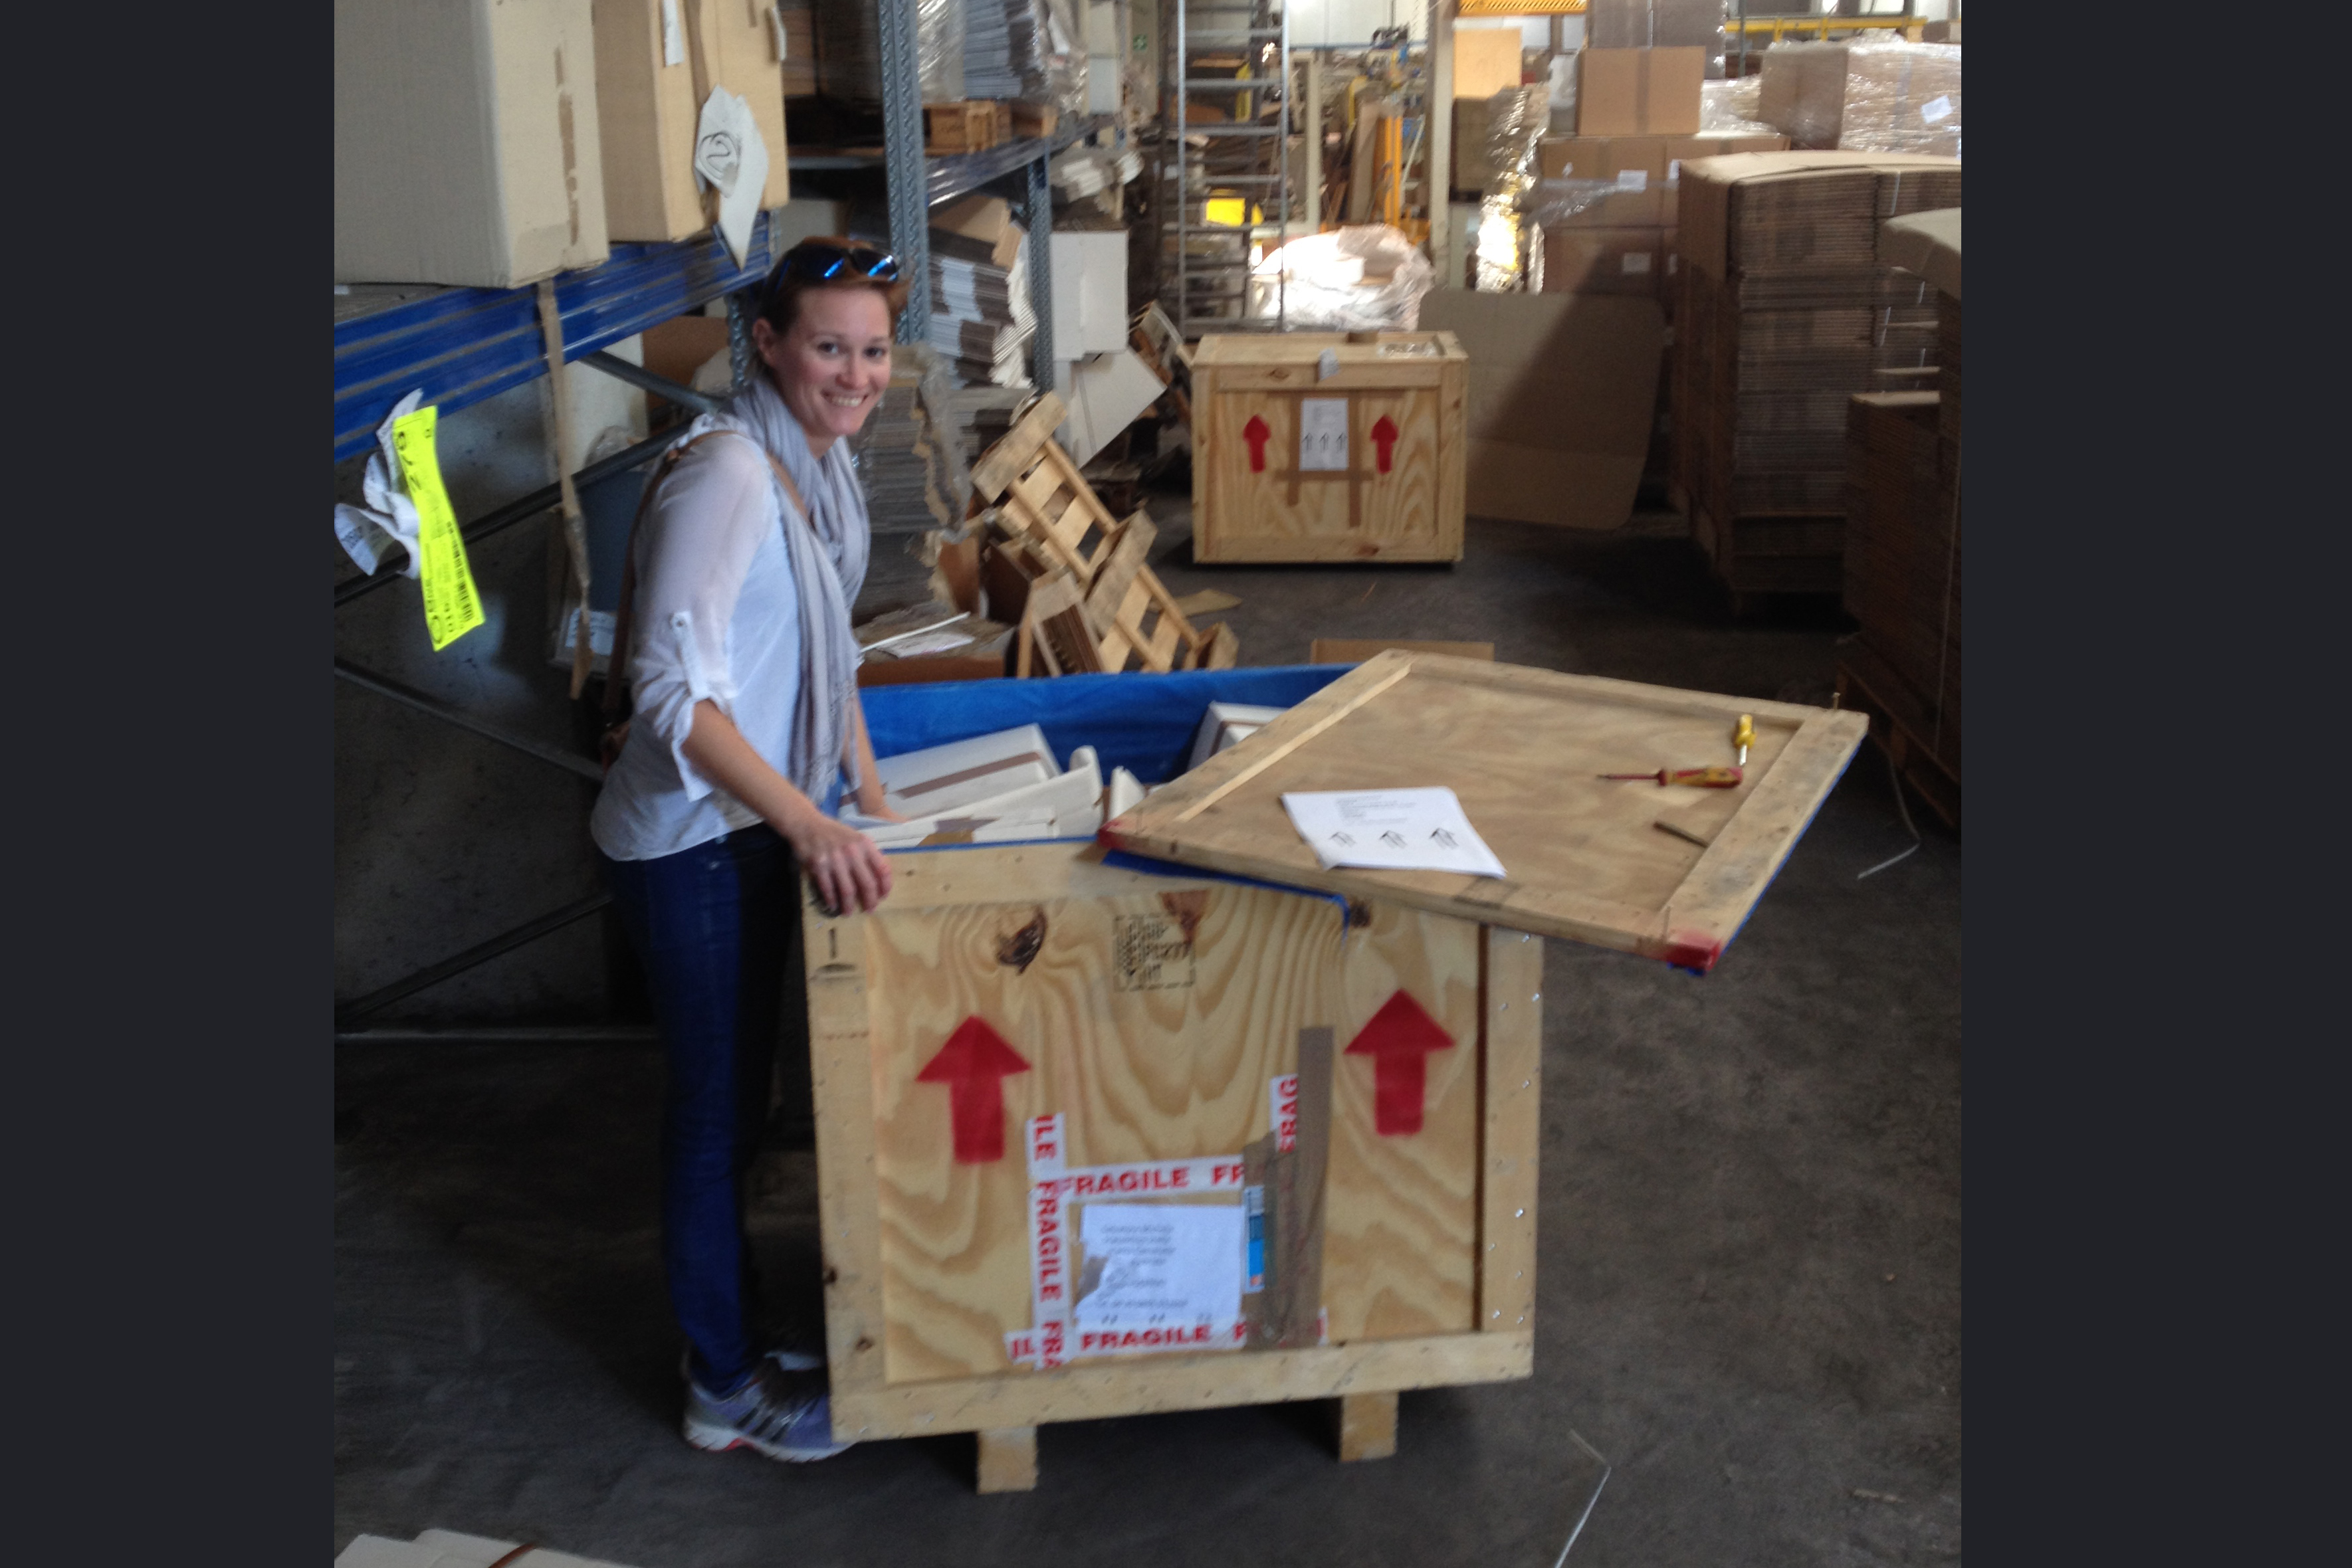 Artist Lauren Wells unloading her crates of art works and equipment after delivery from Scotland at the Scatolificio Stella depot in Italy © Cultural Documents